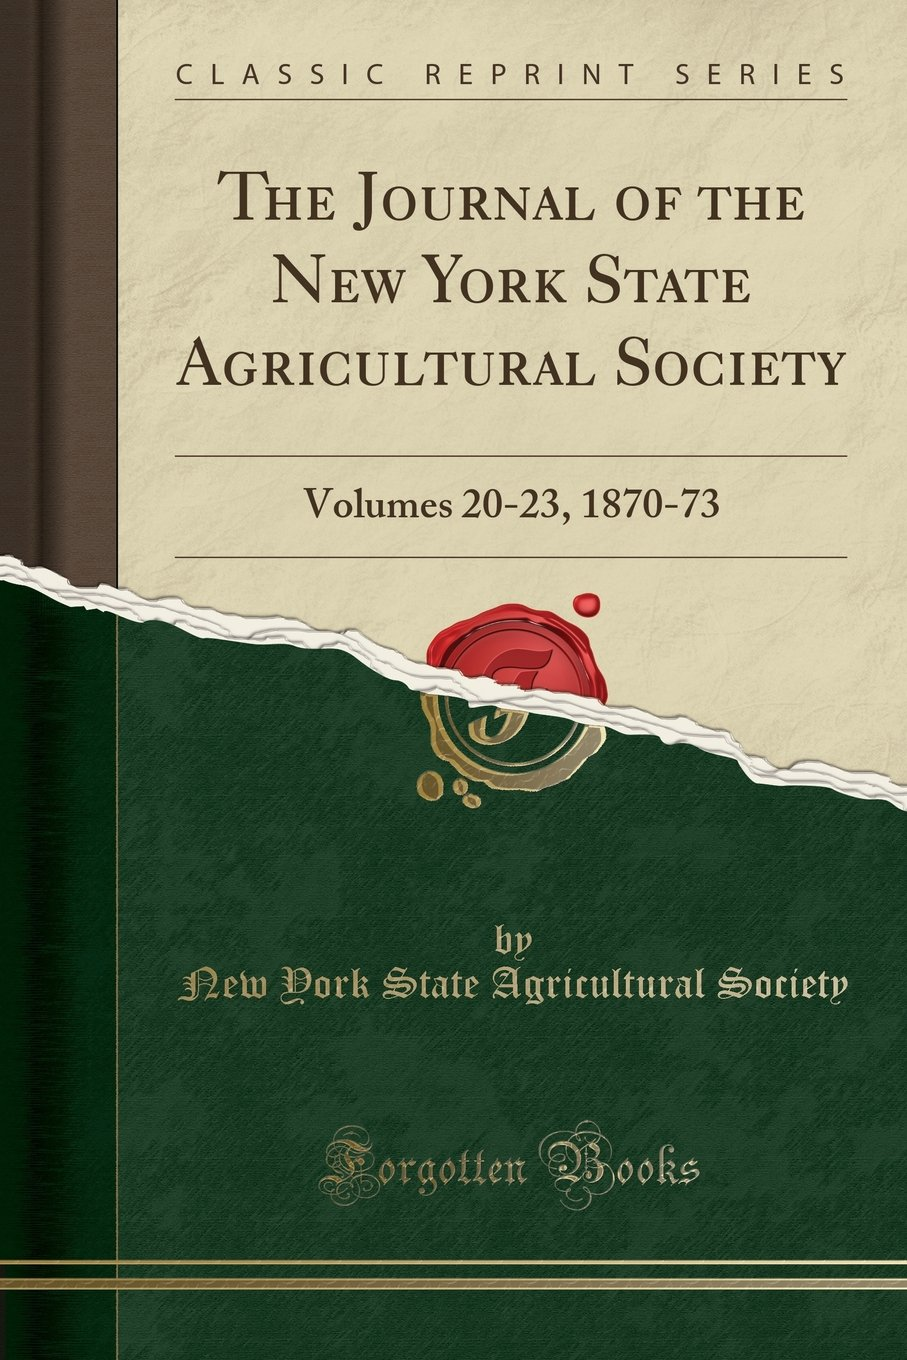 The Journal of the New York State Agricultural Society: Volumes 20-23, 1870-73 (Classic Reprint) PDF